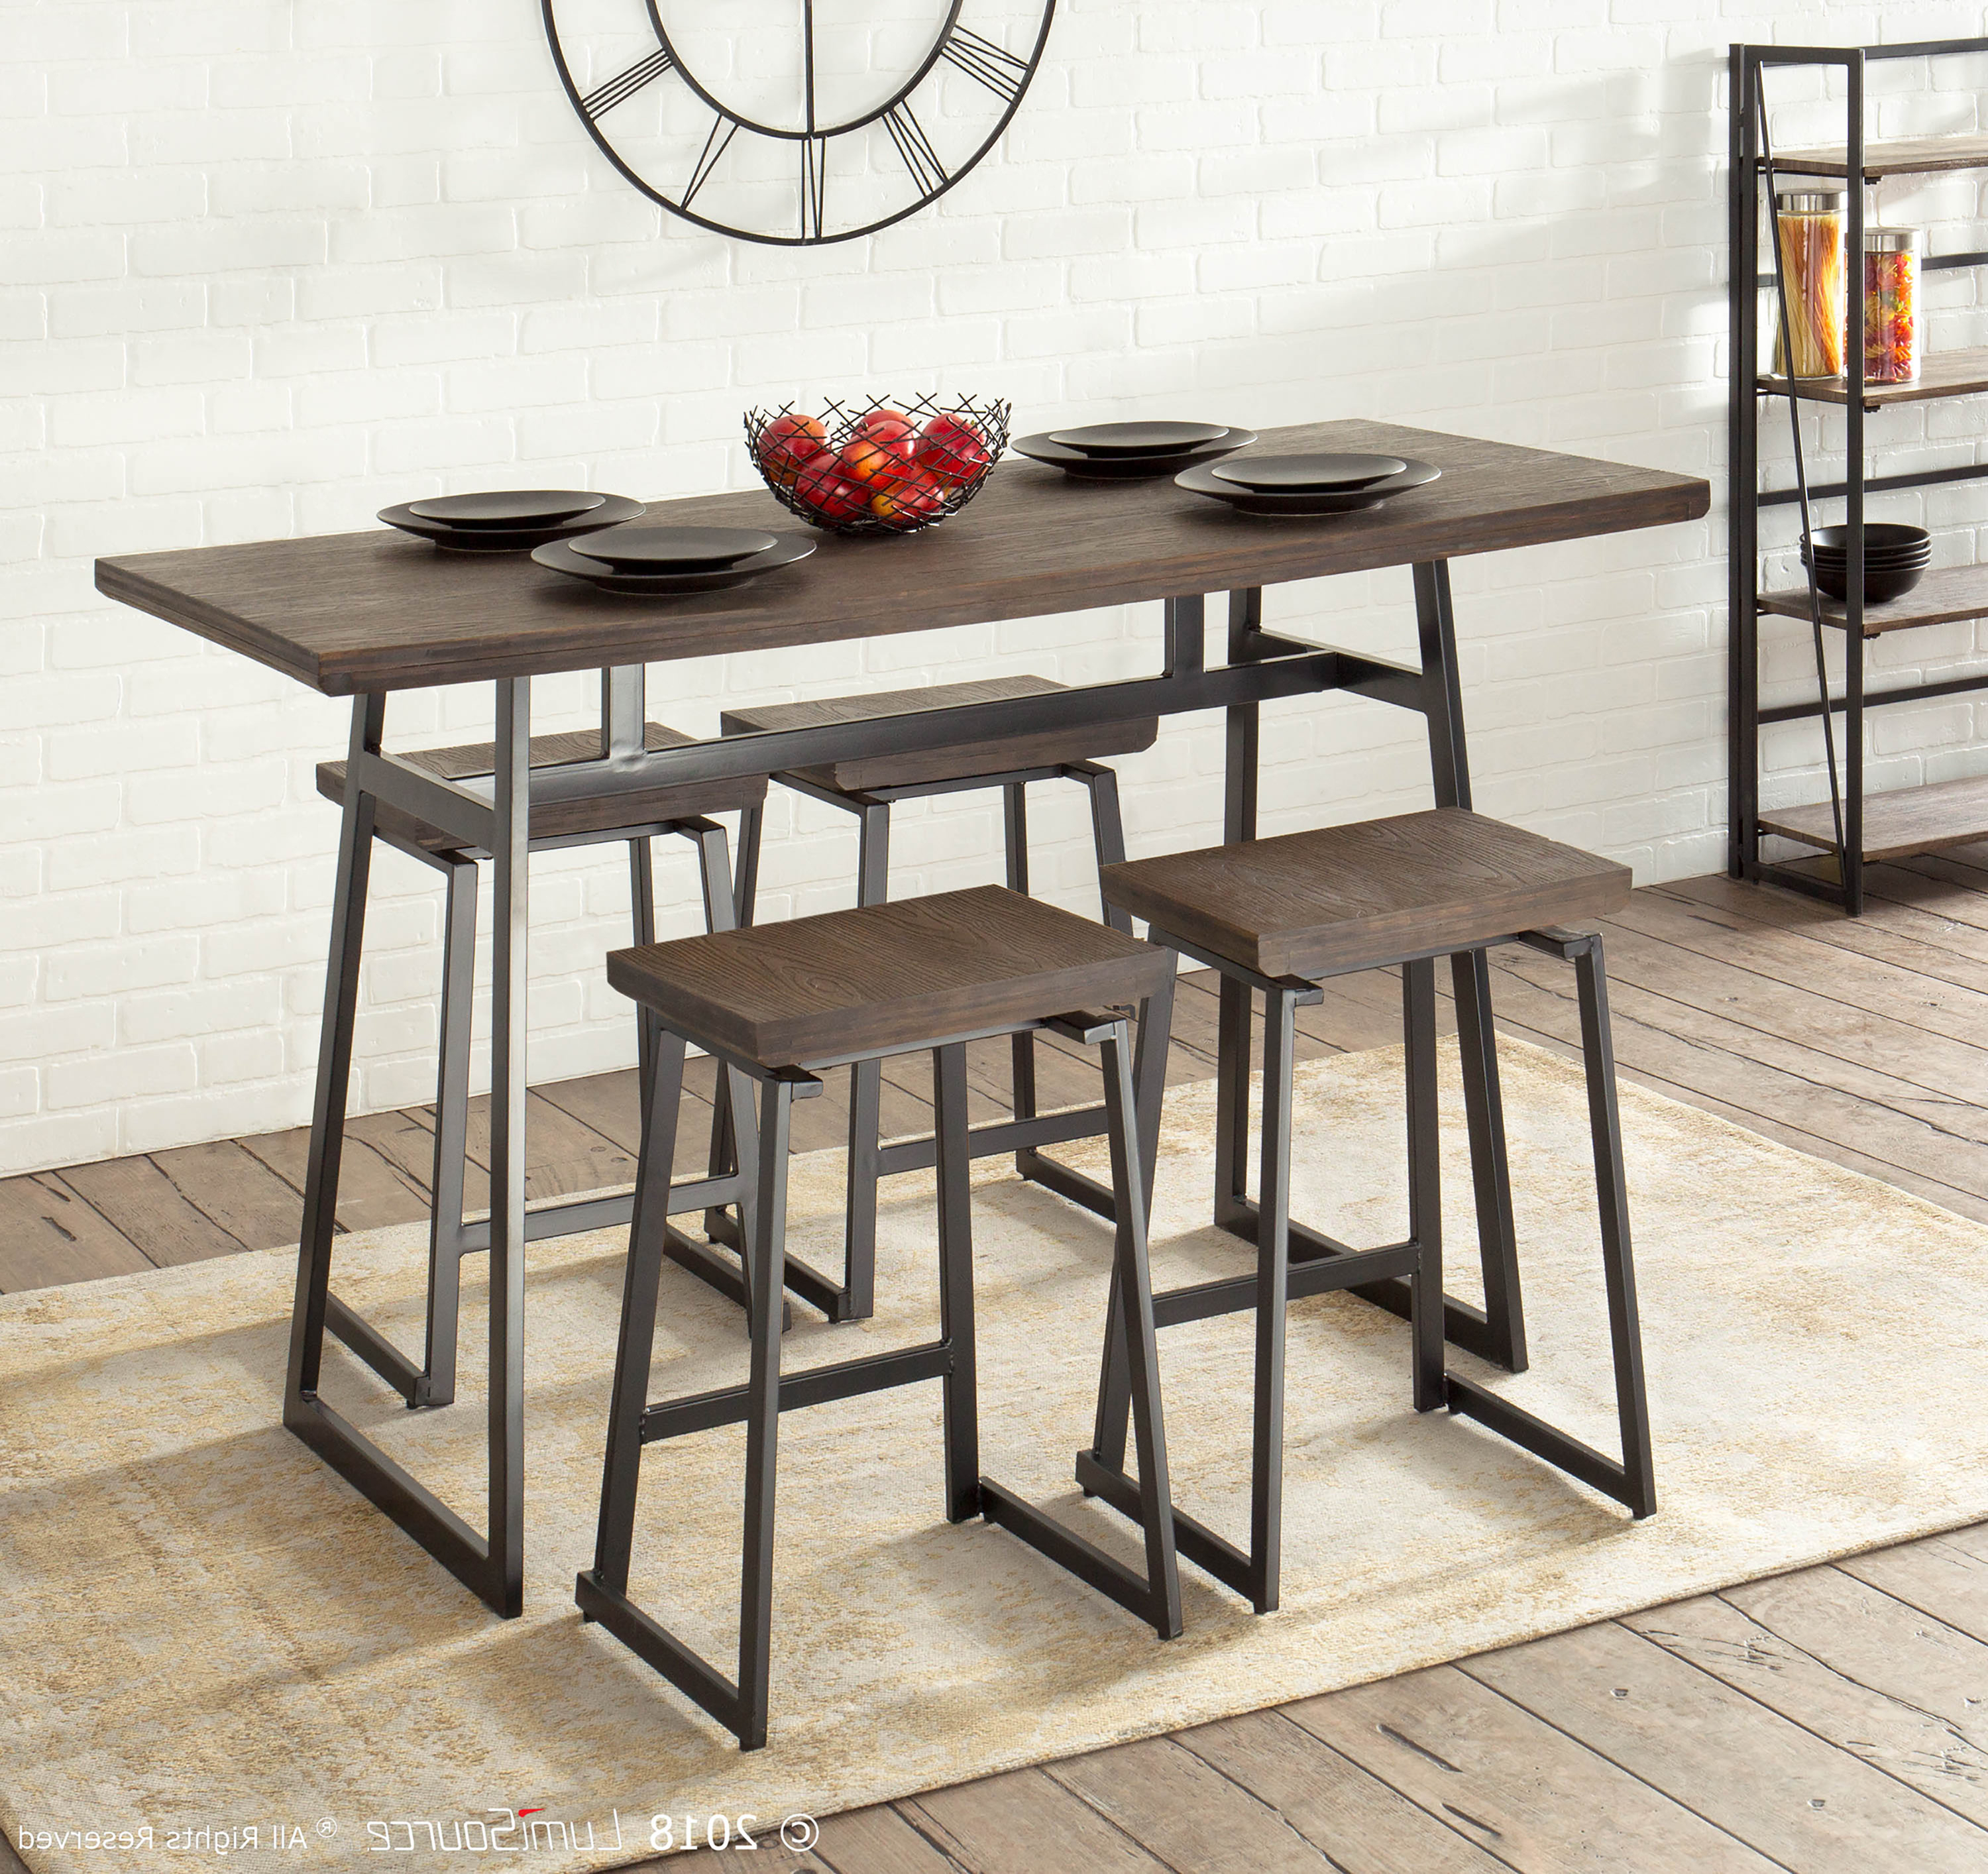 Cassiopeia Industrial 5 Piece Counter Height Dining Set & Reviews With Regard To Most Up To Date Weatherholt Dining Tables (View 8 of 25)